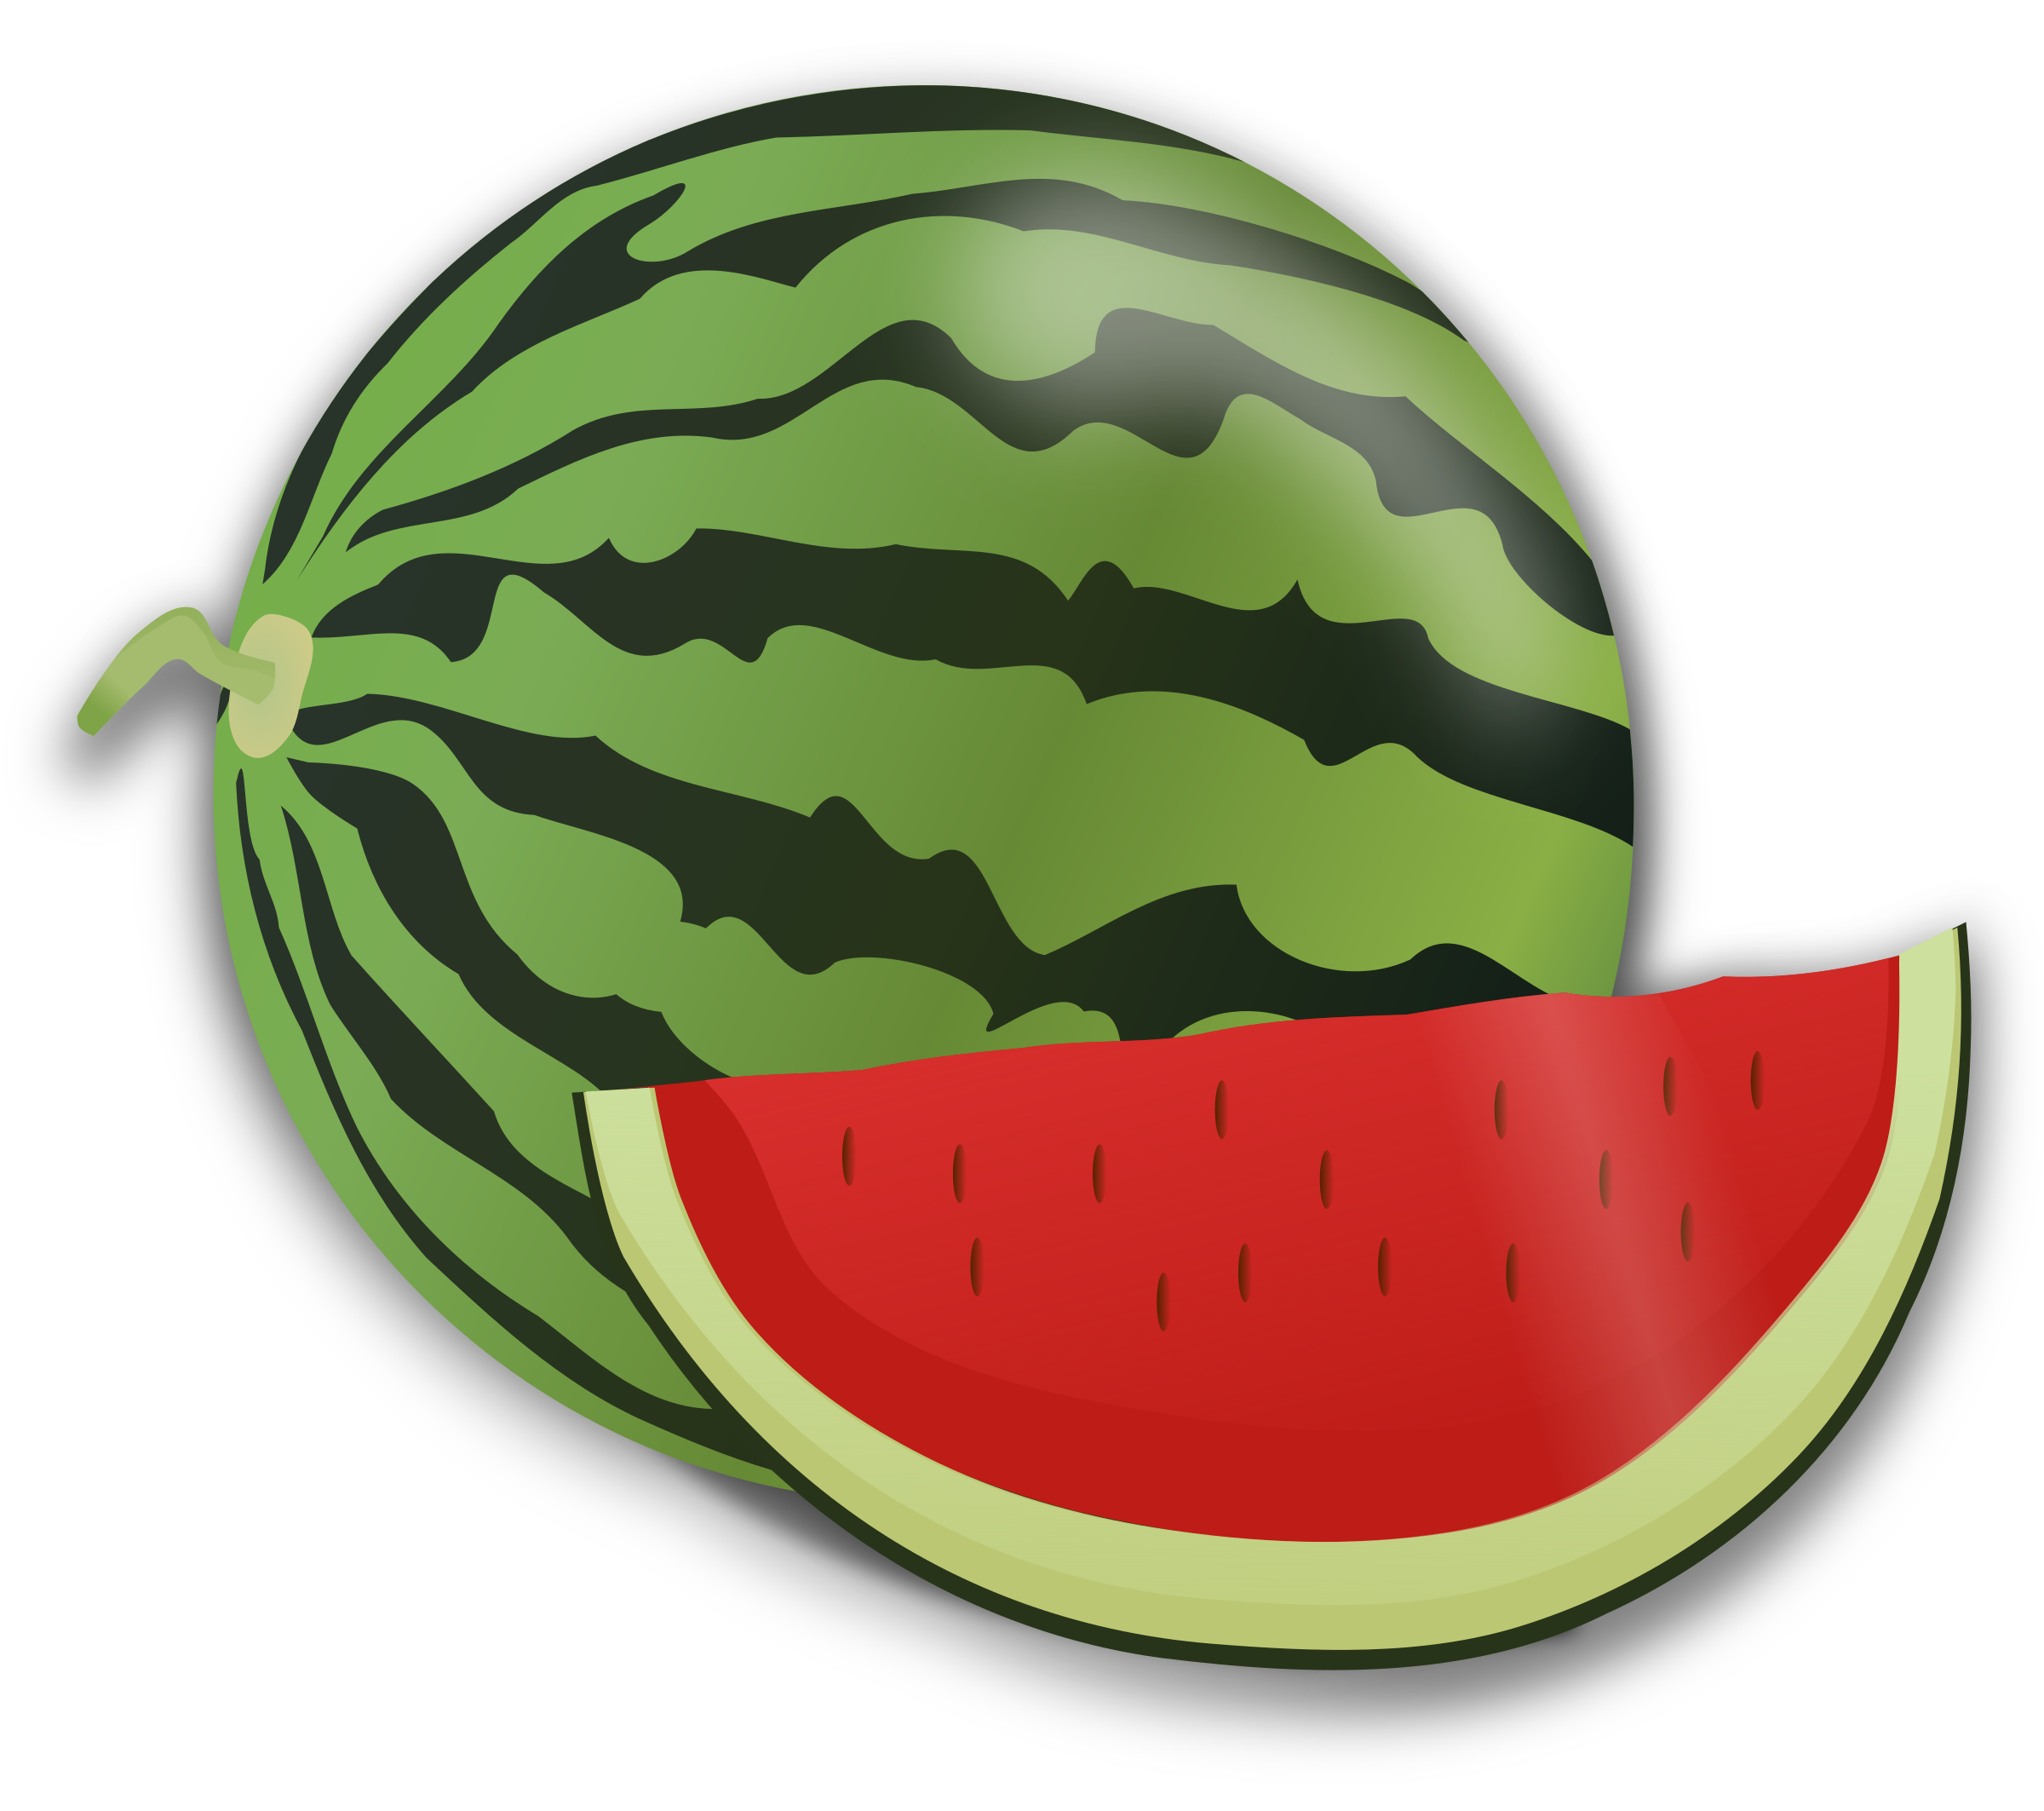 Water Melon by gnokii